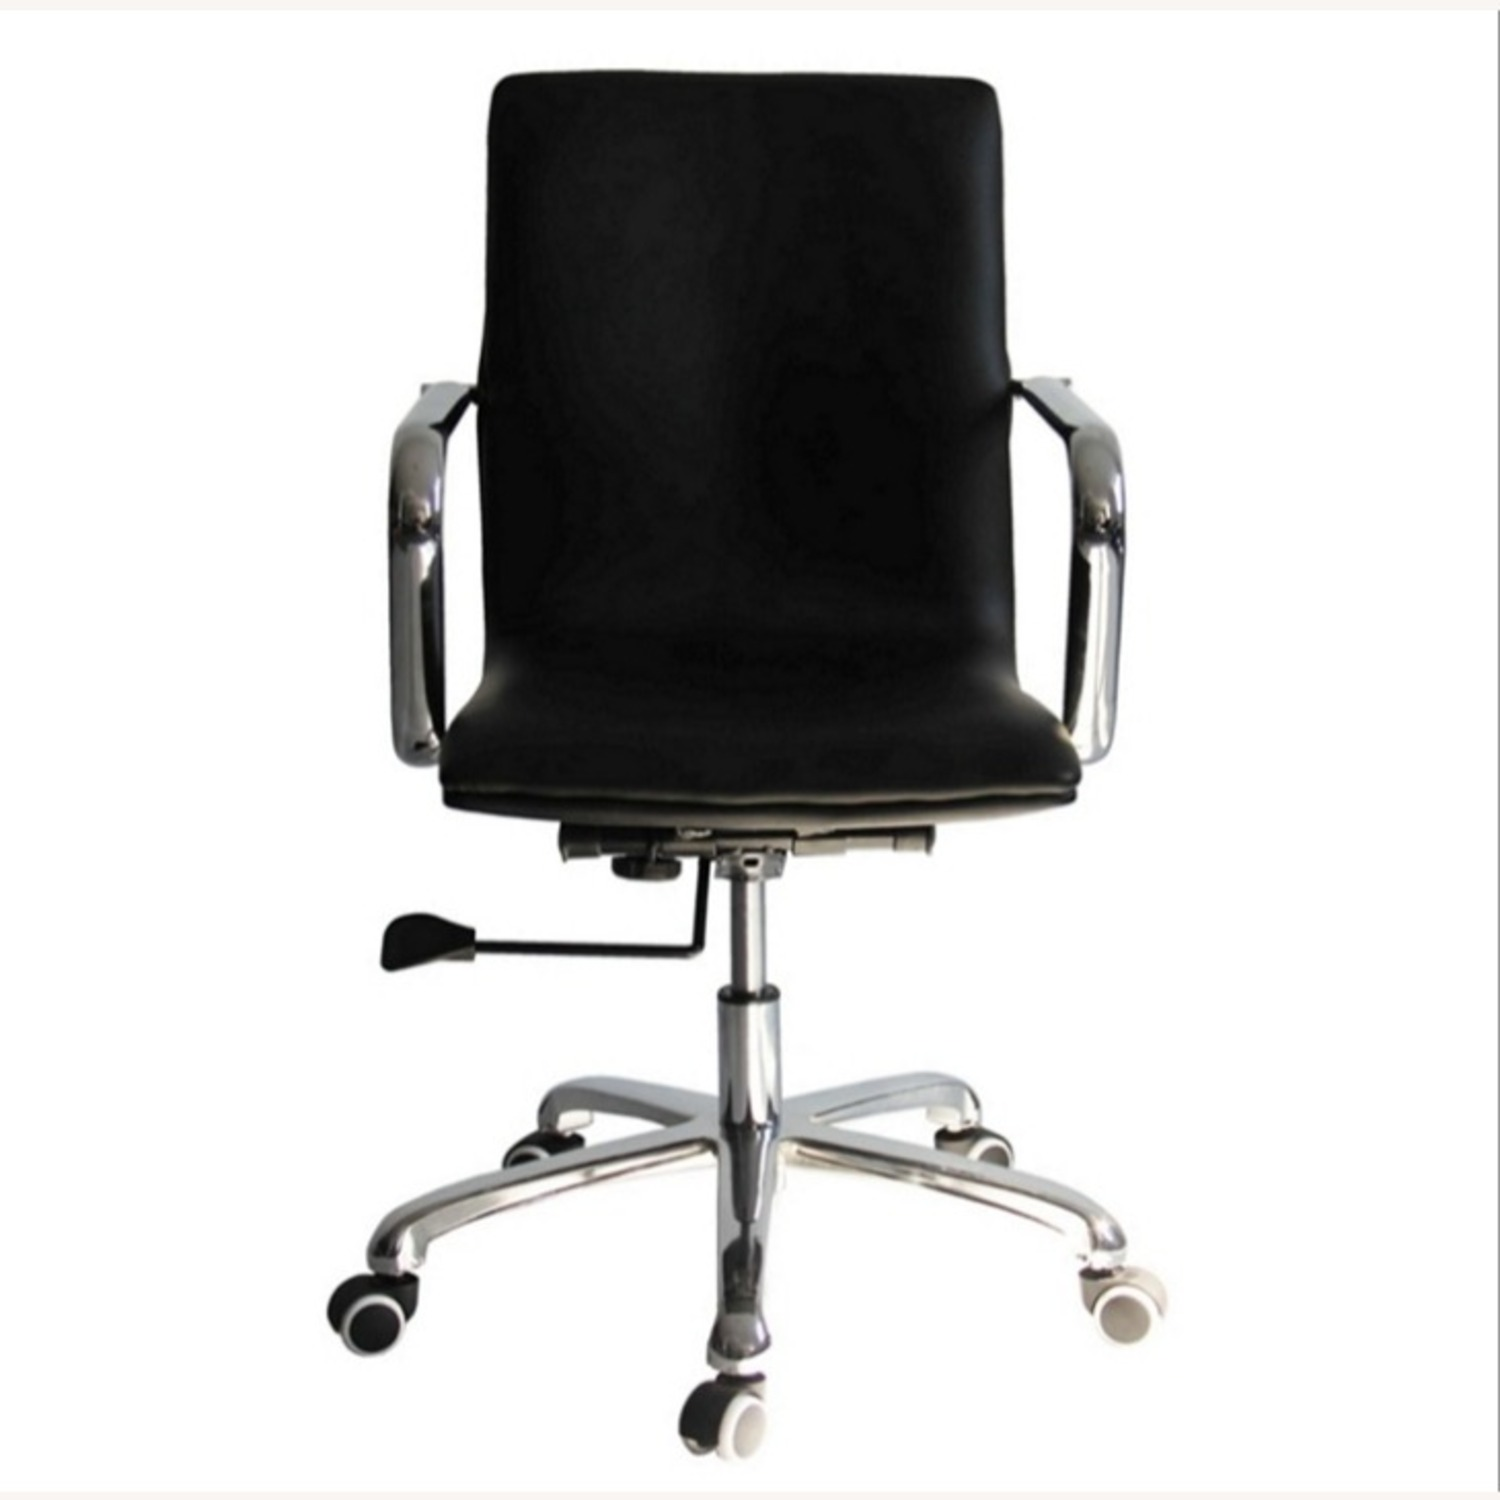 Office Chair In Mid-Back Black Leatherette Finish - image-3